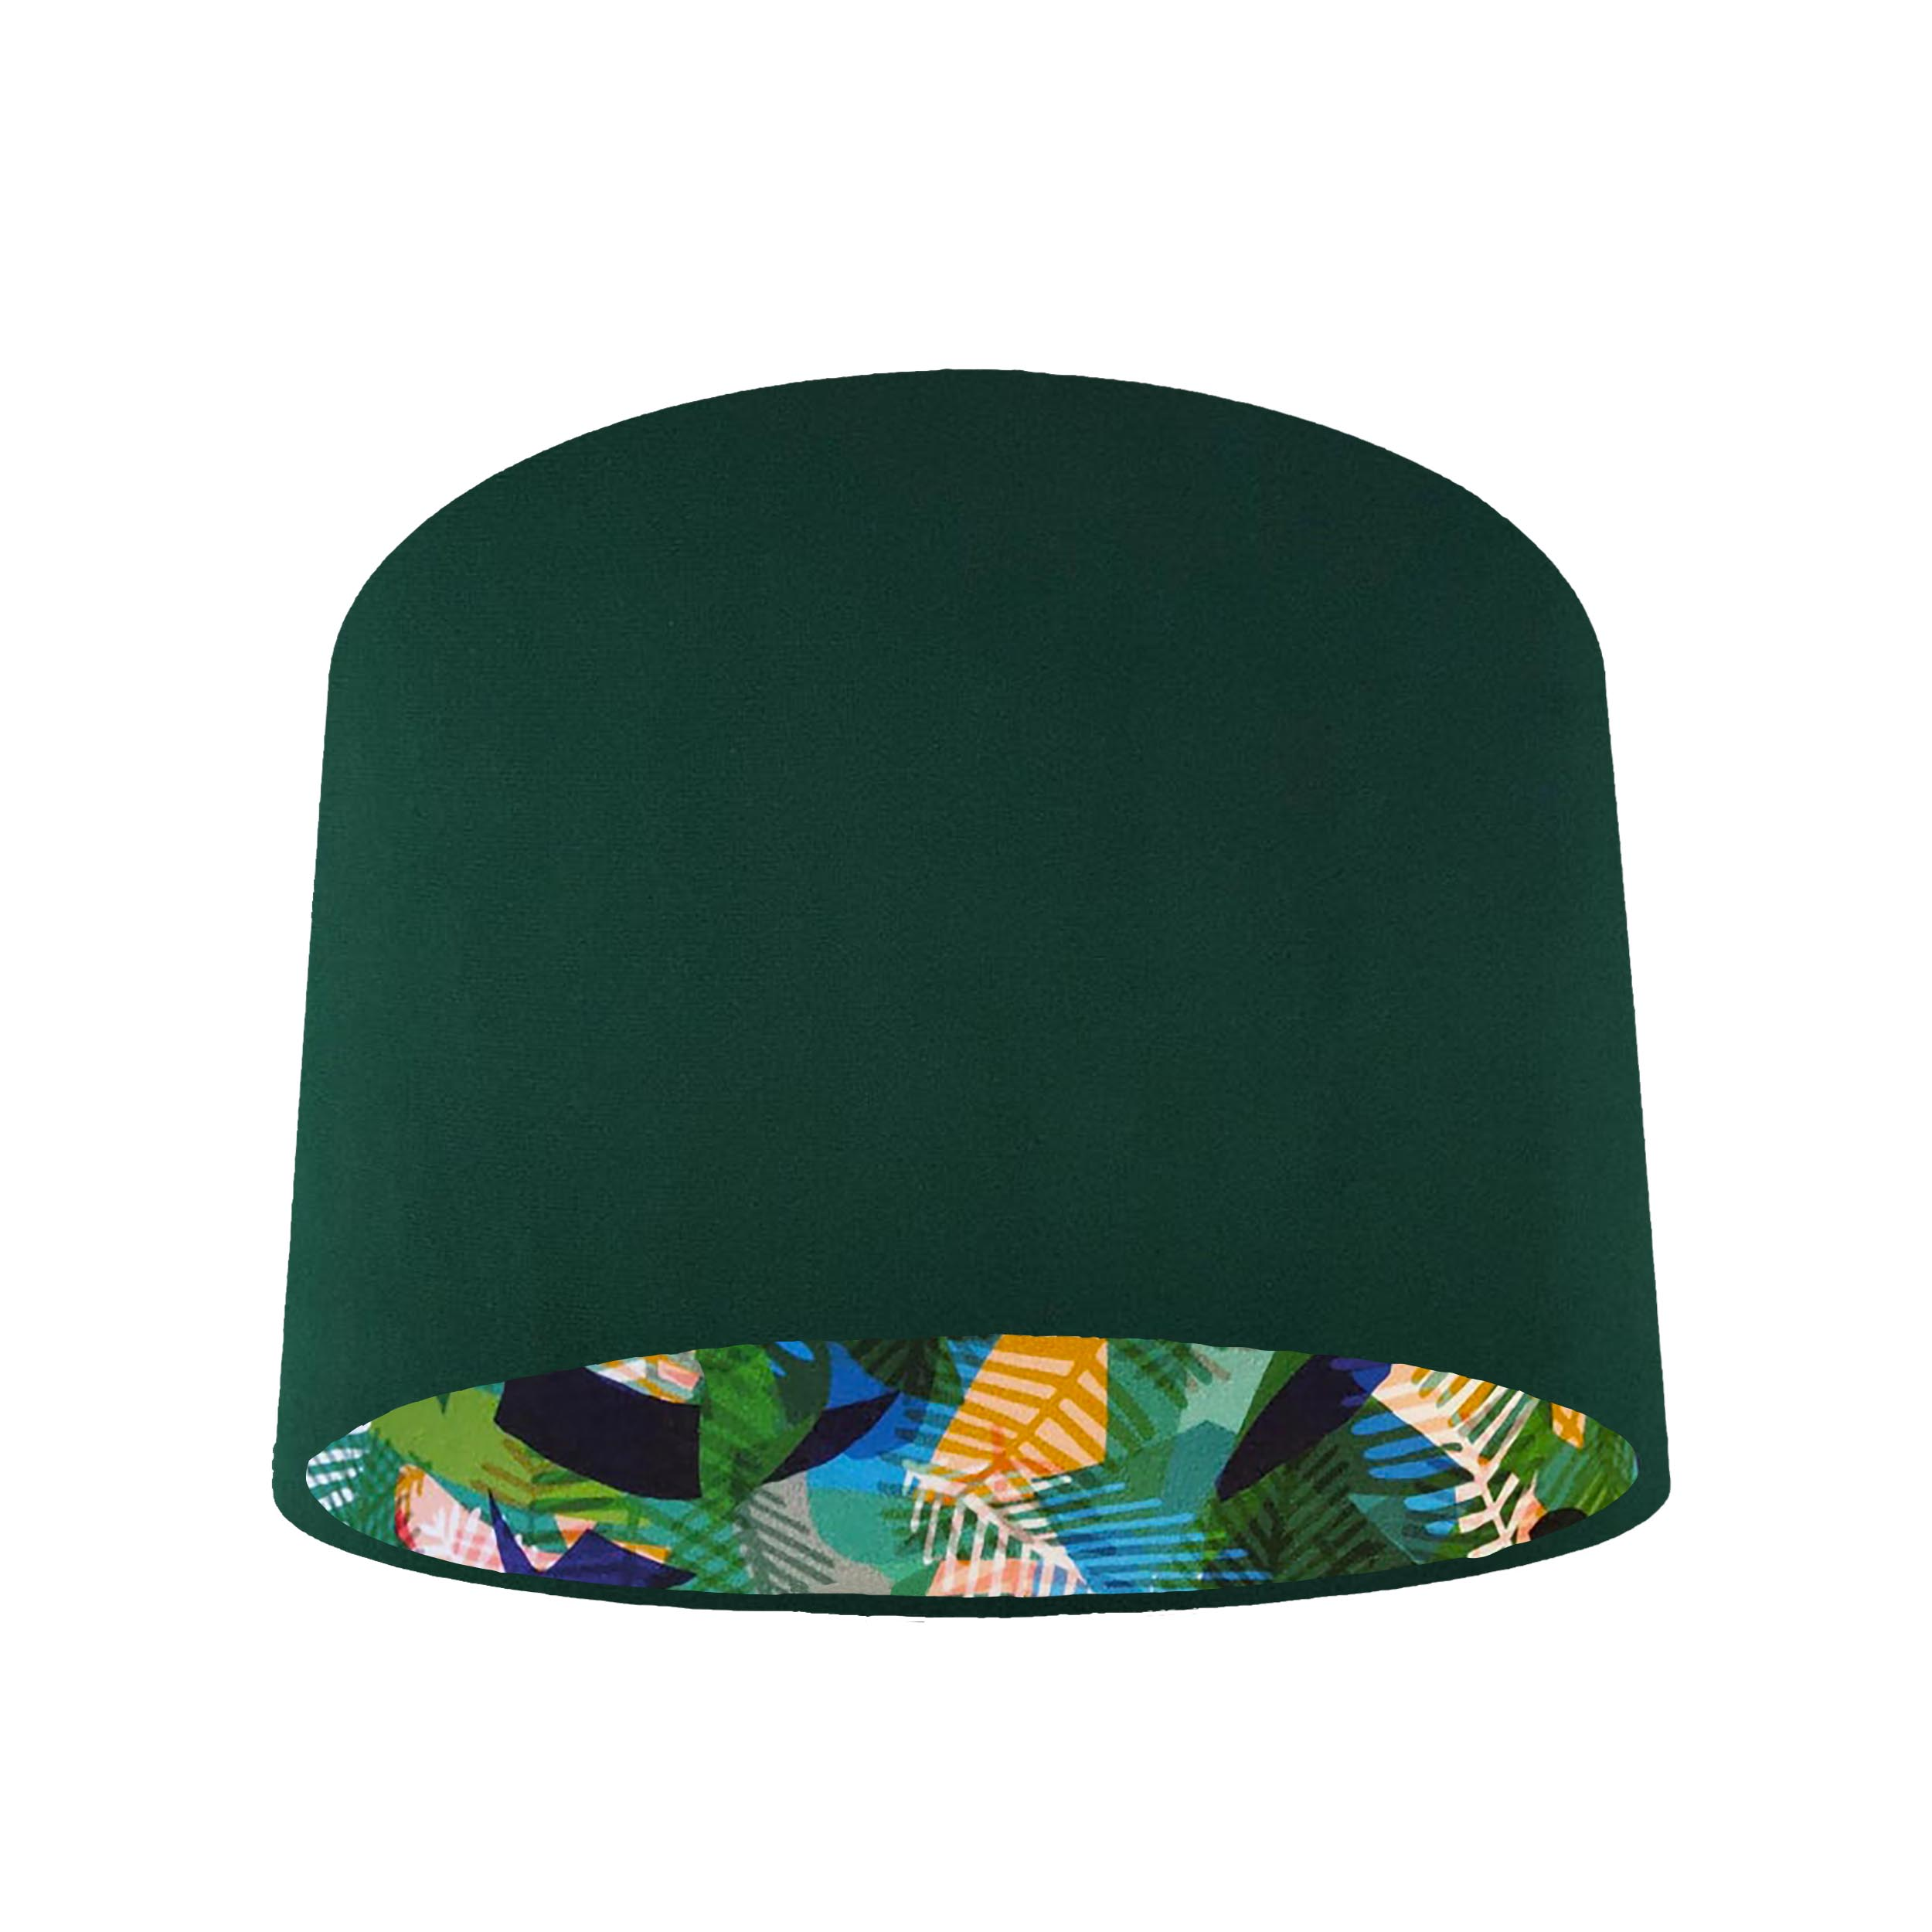 Green Velvet Lampshade with Green Geometric Leaf Lining